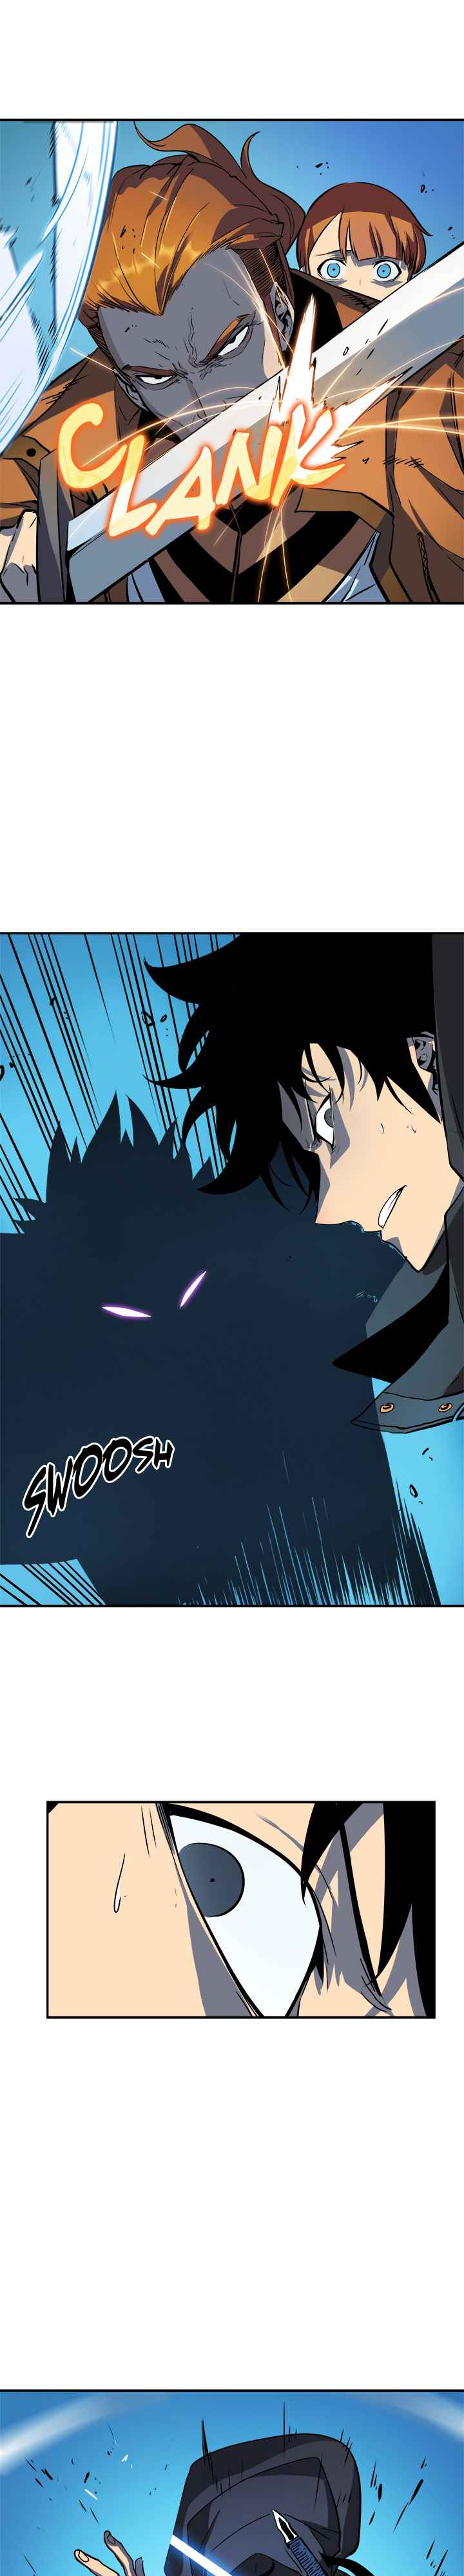 Solo Leveling Chapter 32 Page 22